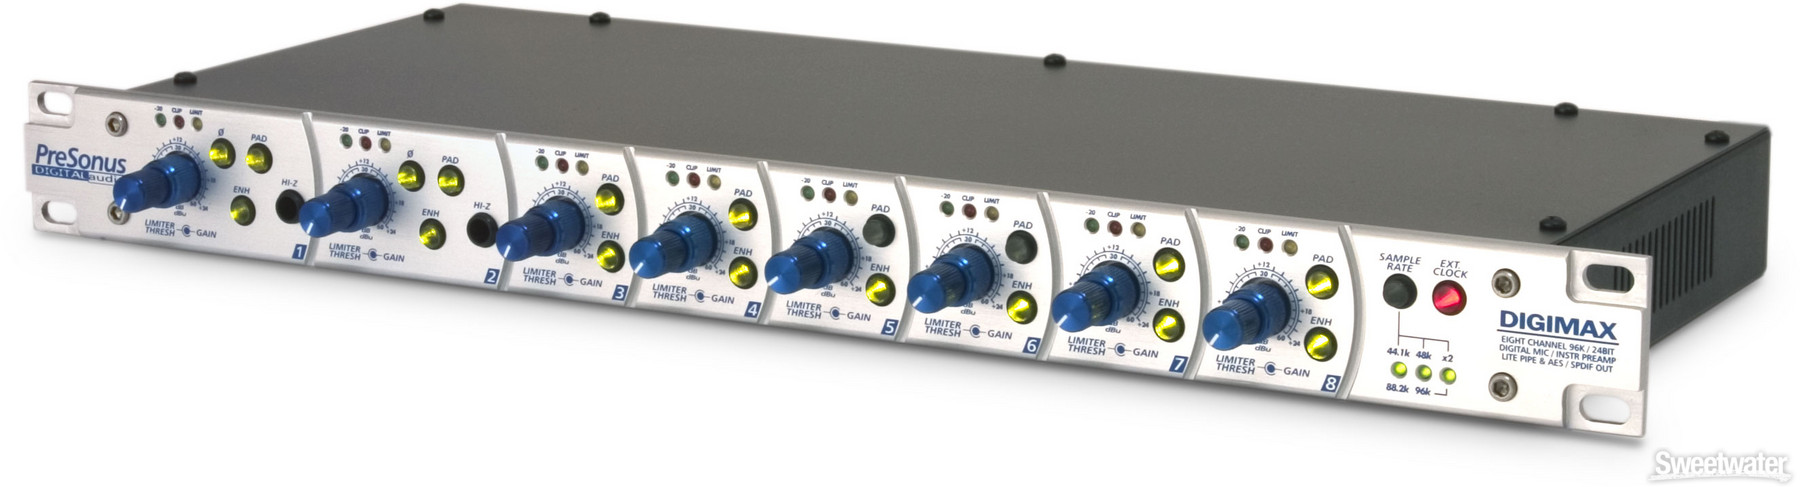 DigiMax D8 is Now Shipping | Press Releases | PreSonus